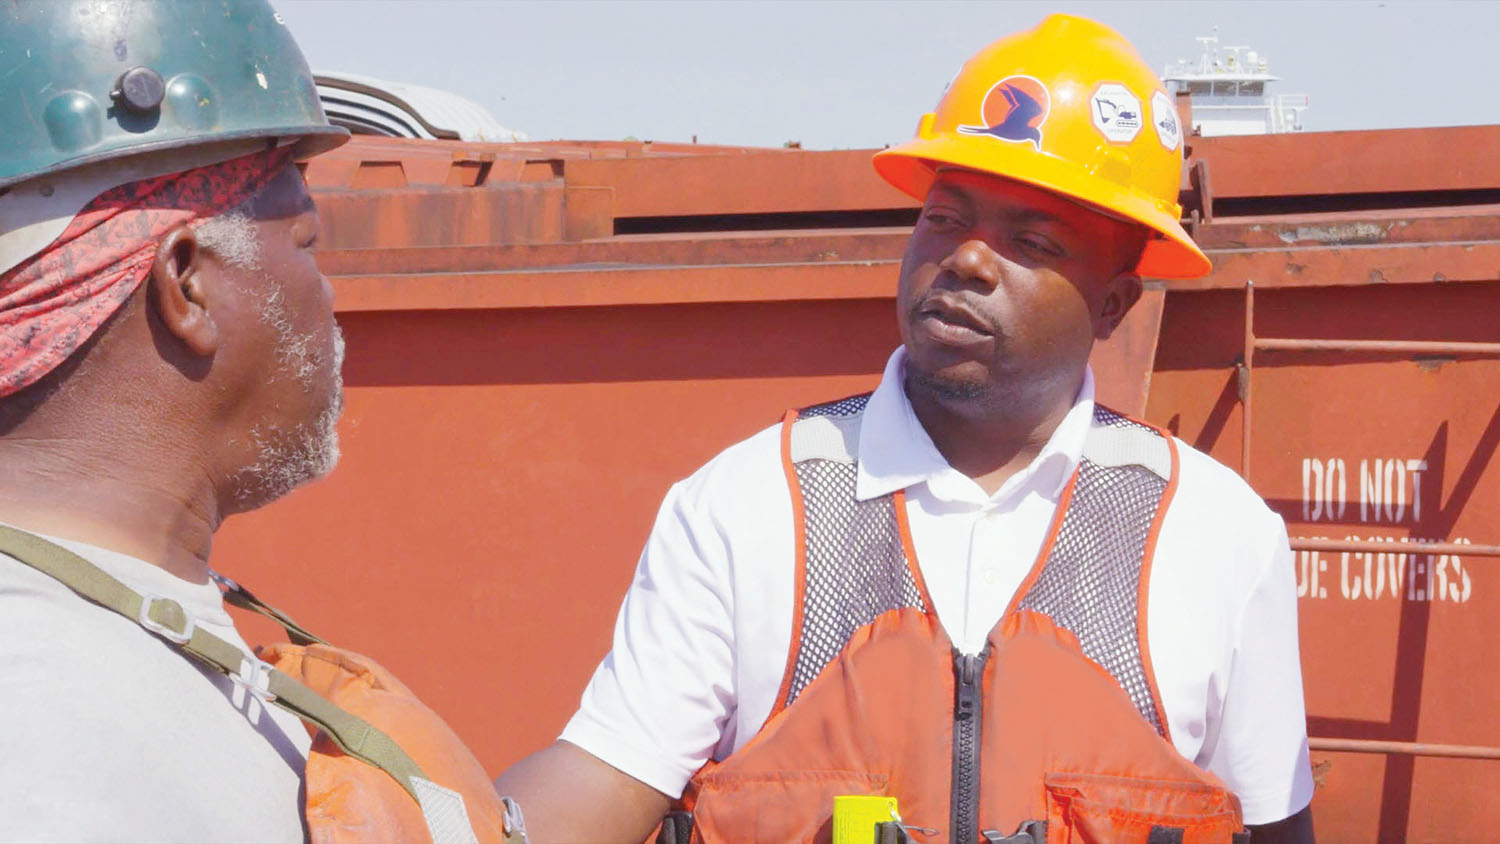 Turn Services Associate Vice President of Fleet Operations Albert Bentley meets with a team member at one of the company's fleet locations.